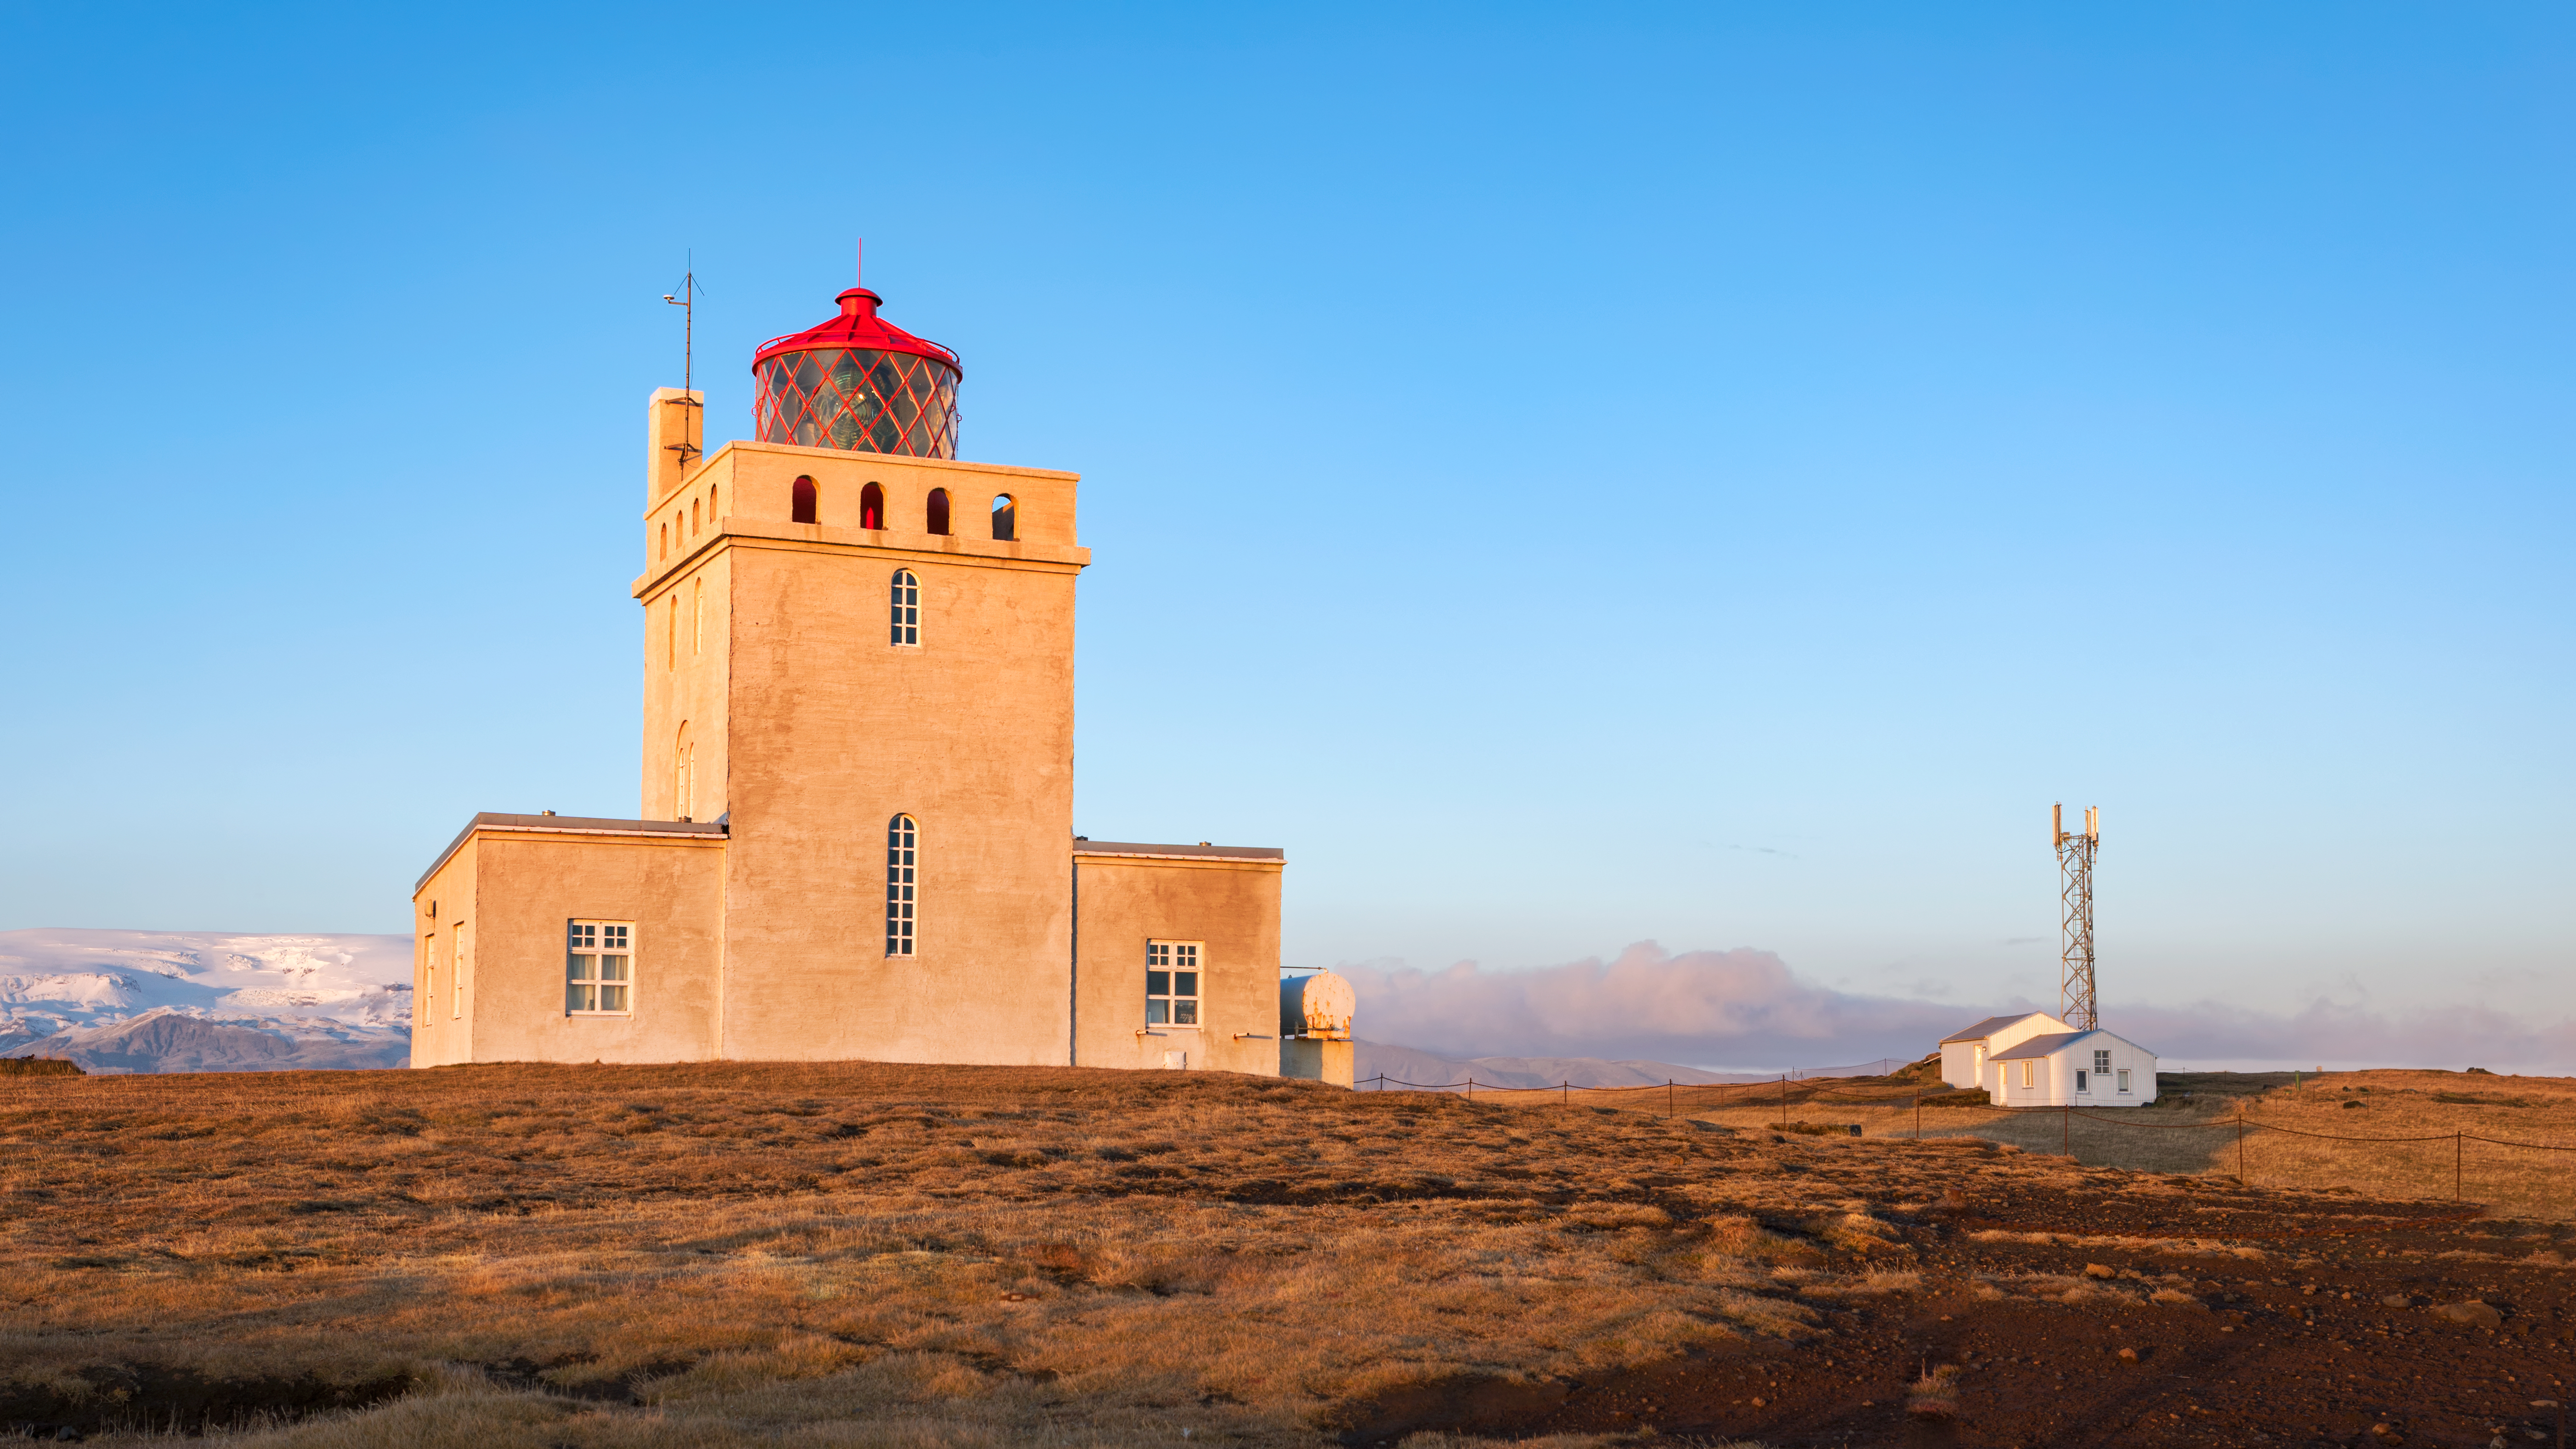 Dyrholaey Light is on the southern side of Iceland, near the city of Vik.